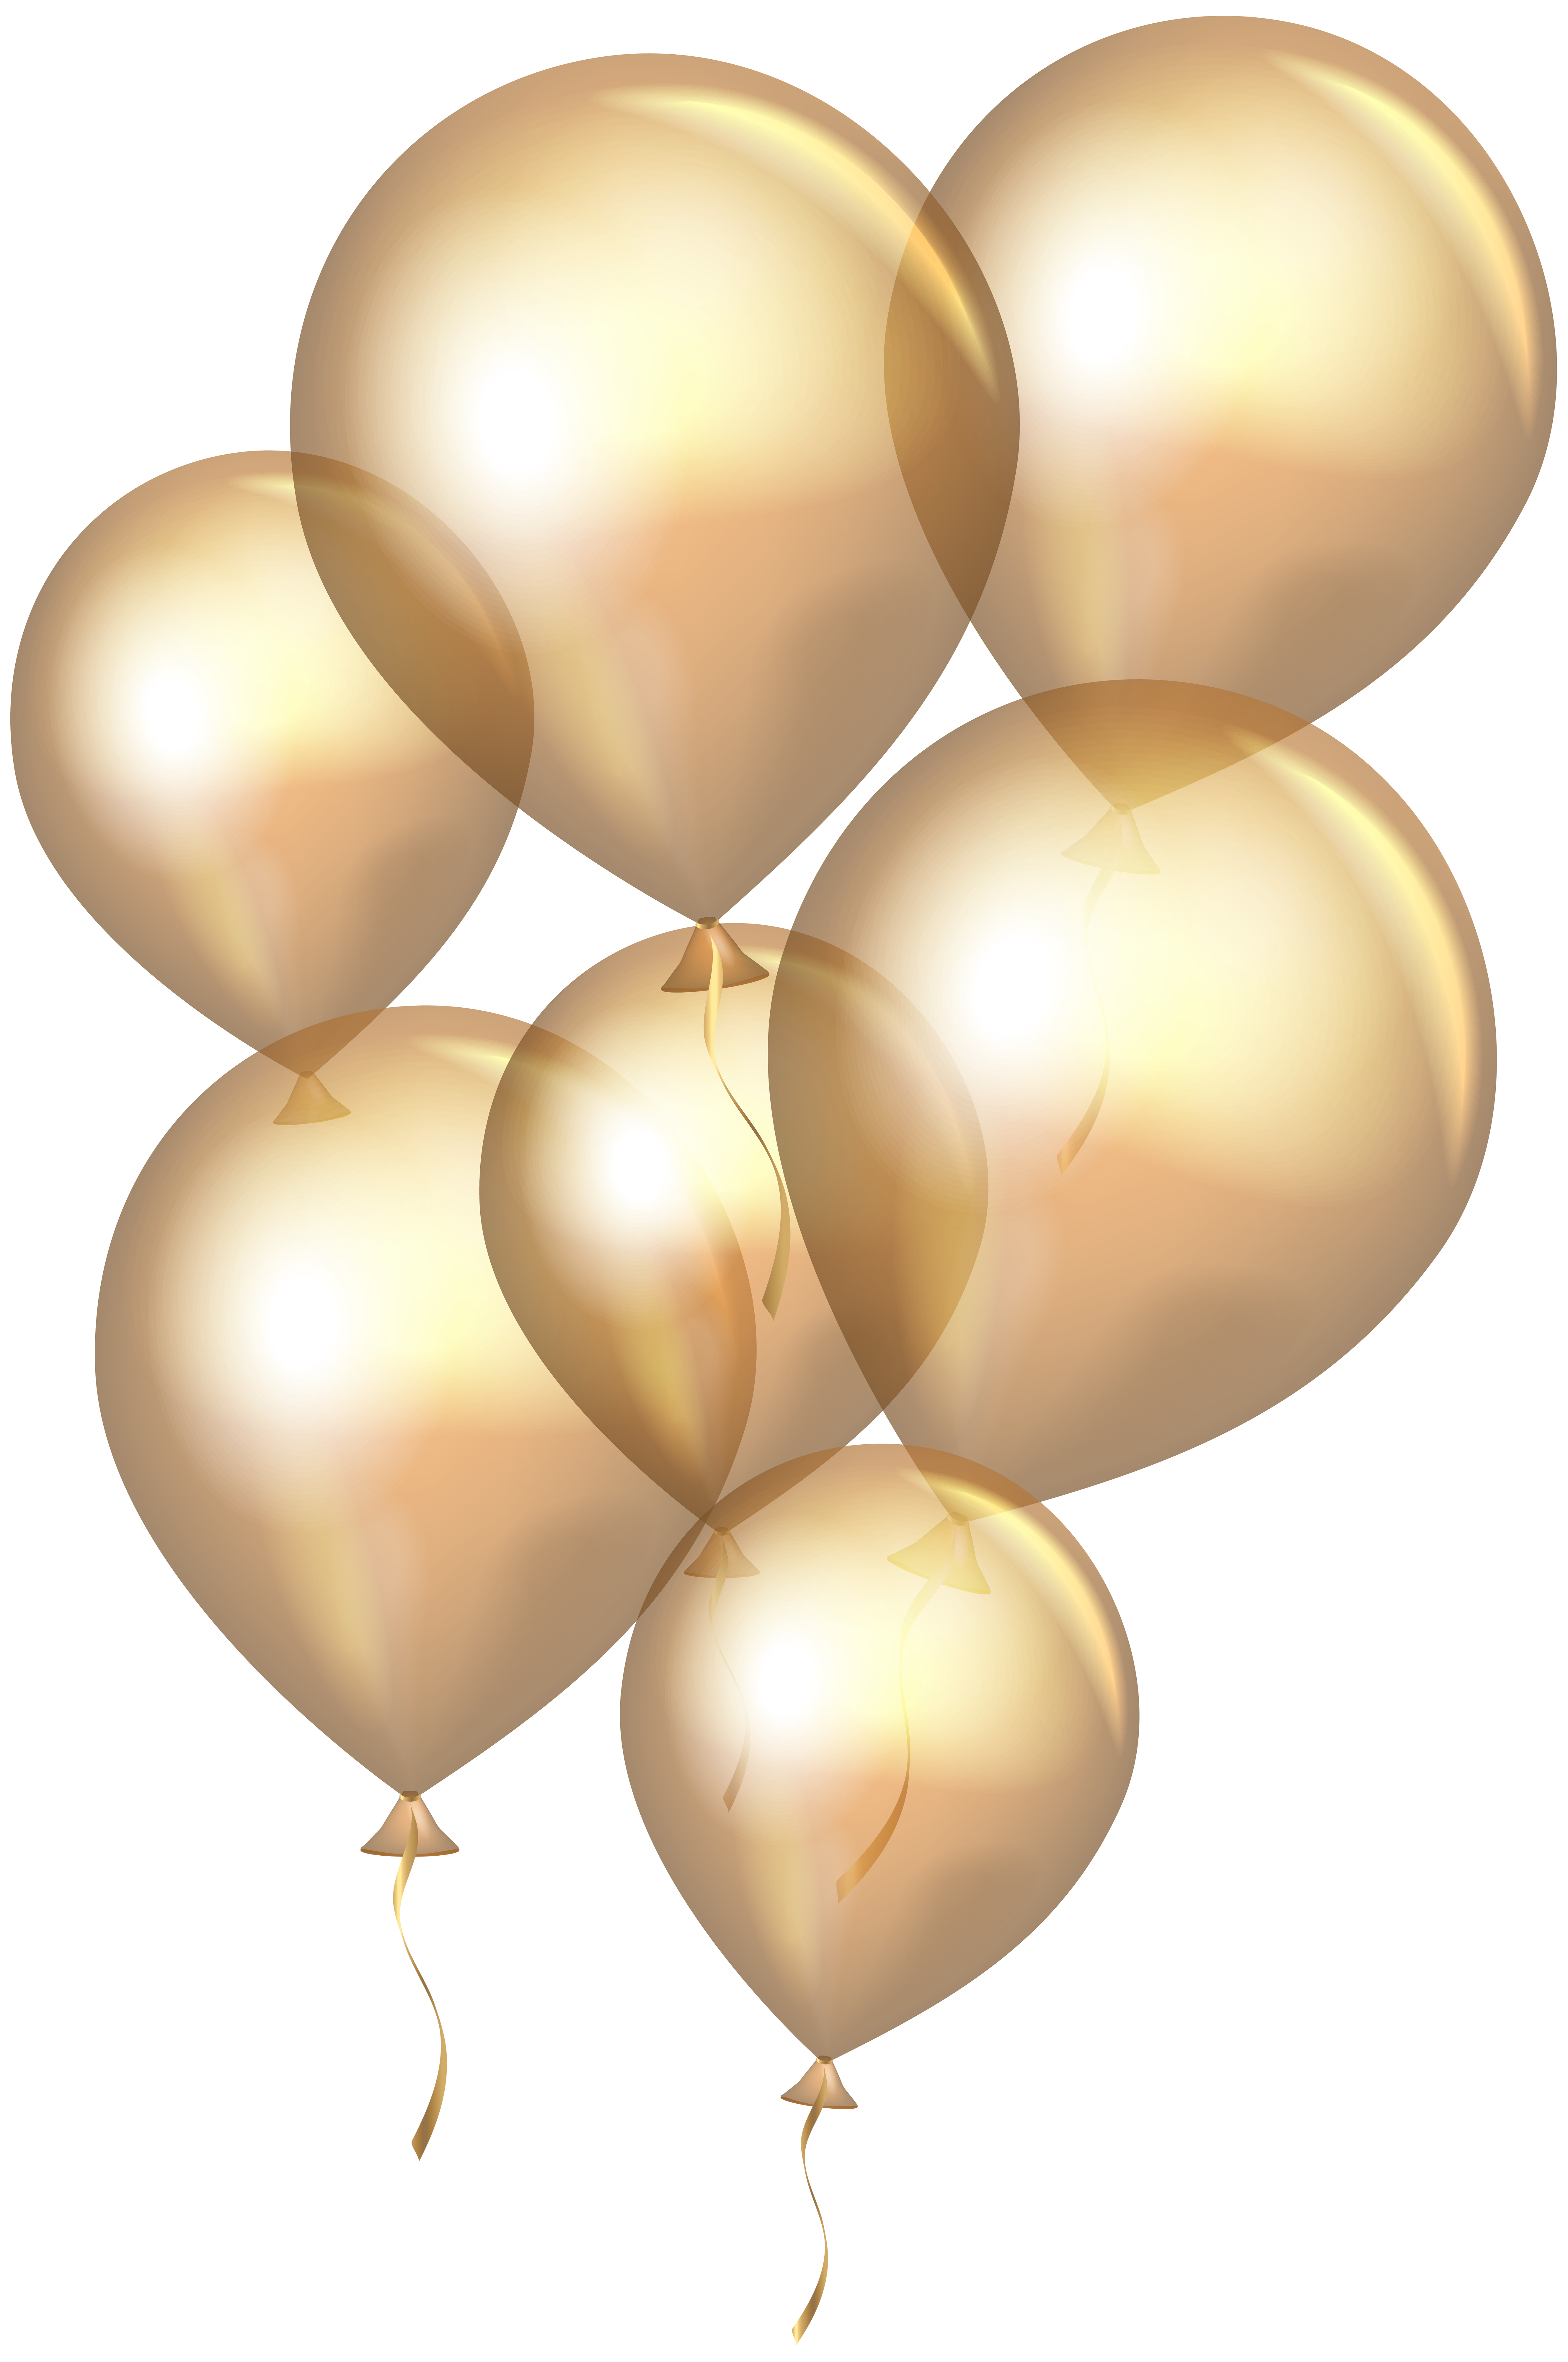 Clipart balloon rose gold. Transparent balloons png clip